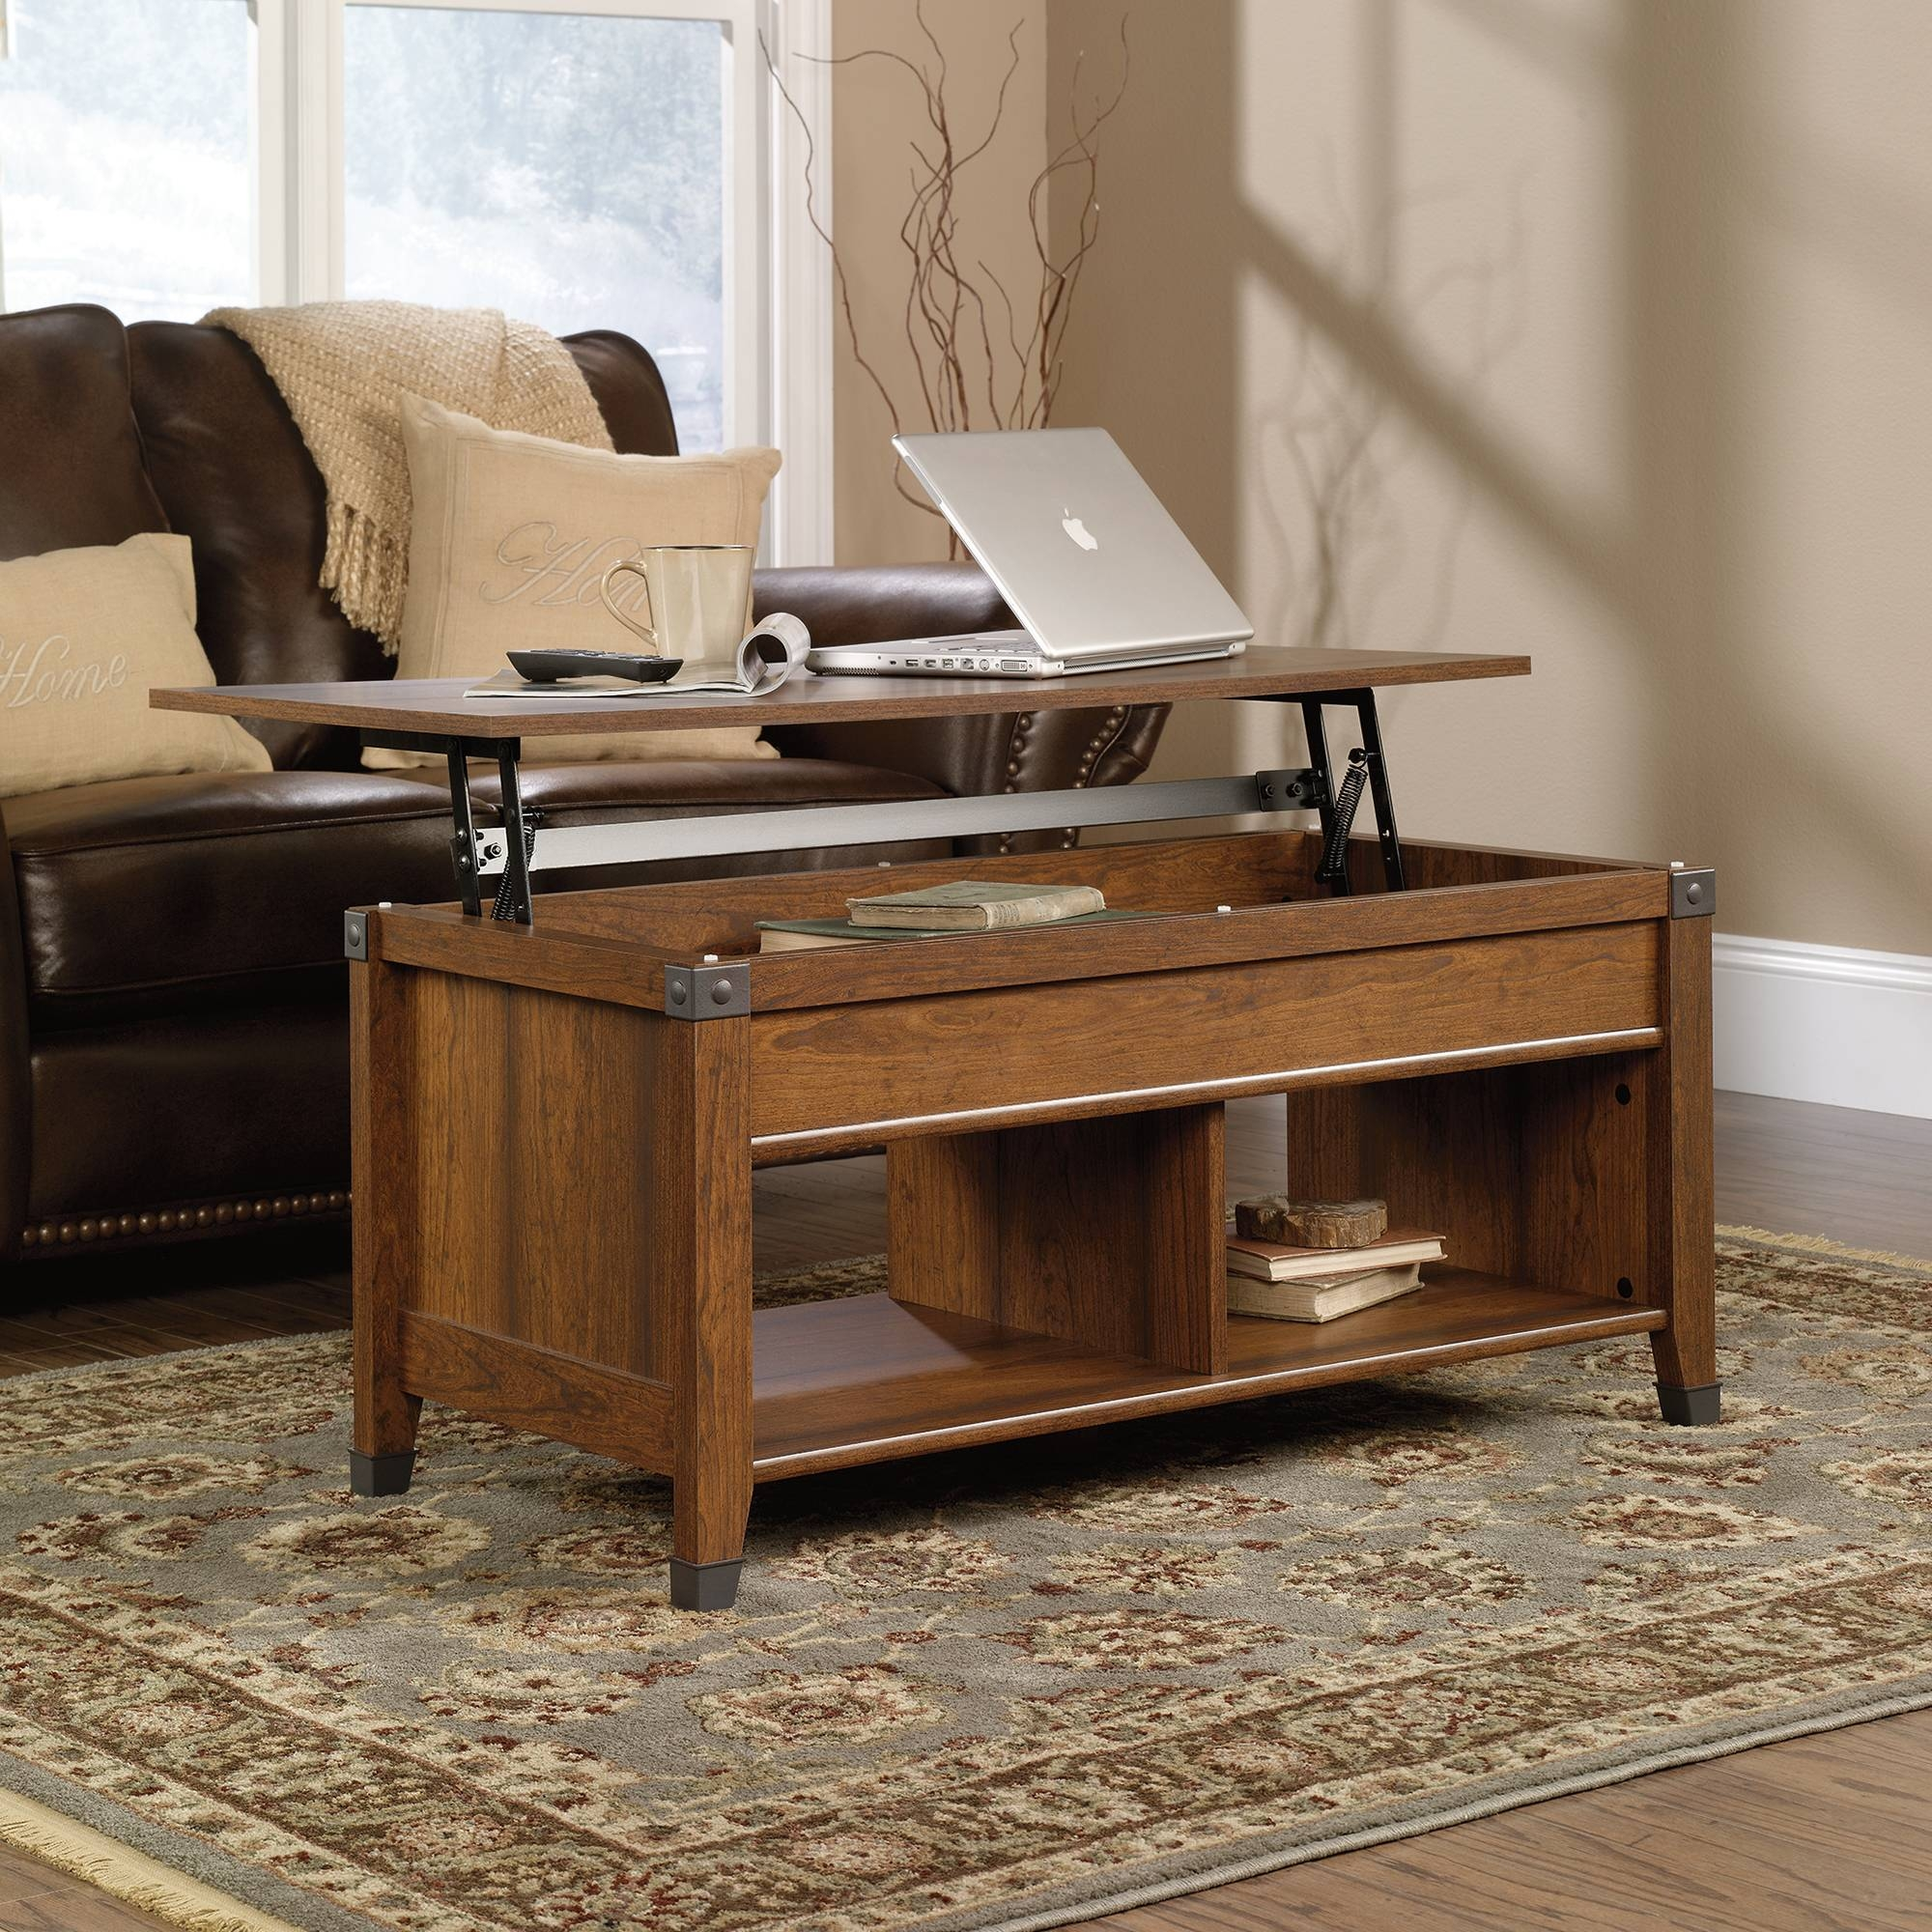 Carson Forge | Lift-Top Coffee Table | 414444 | Sauder with Lift Top Coffee Tables With Storage (Image 3 of 30)